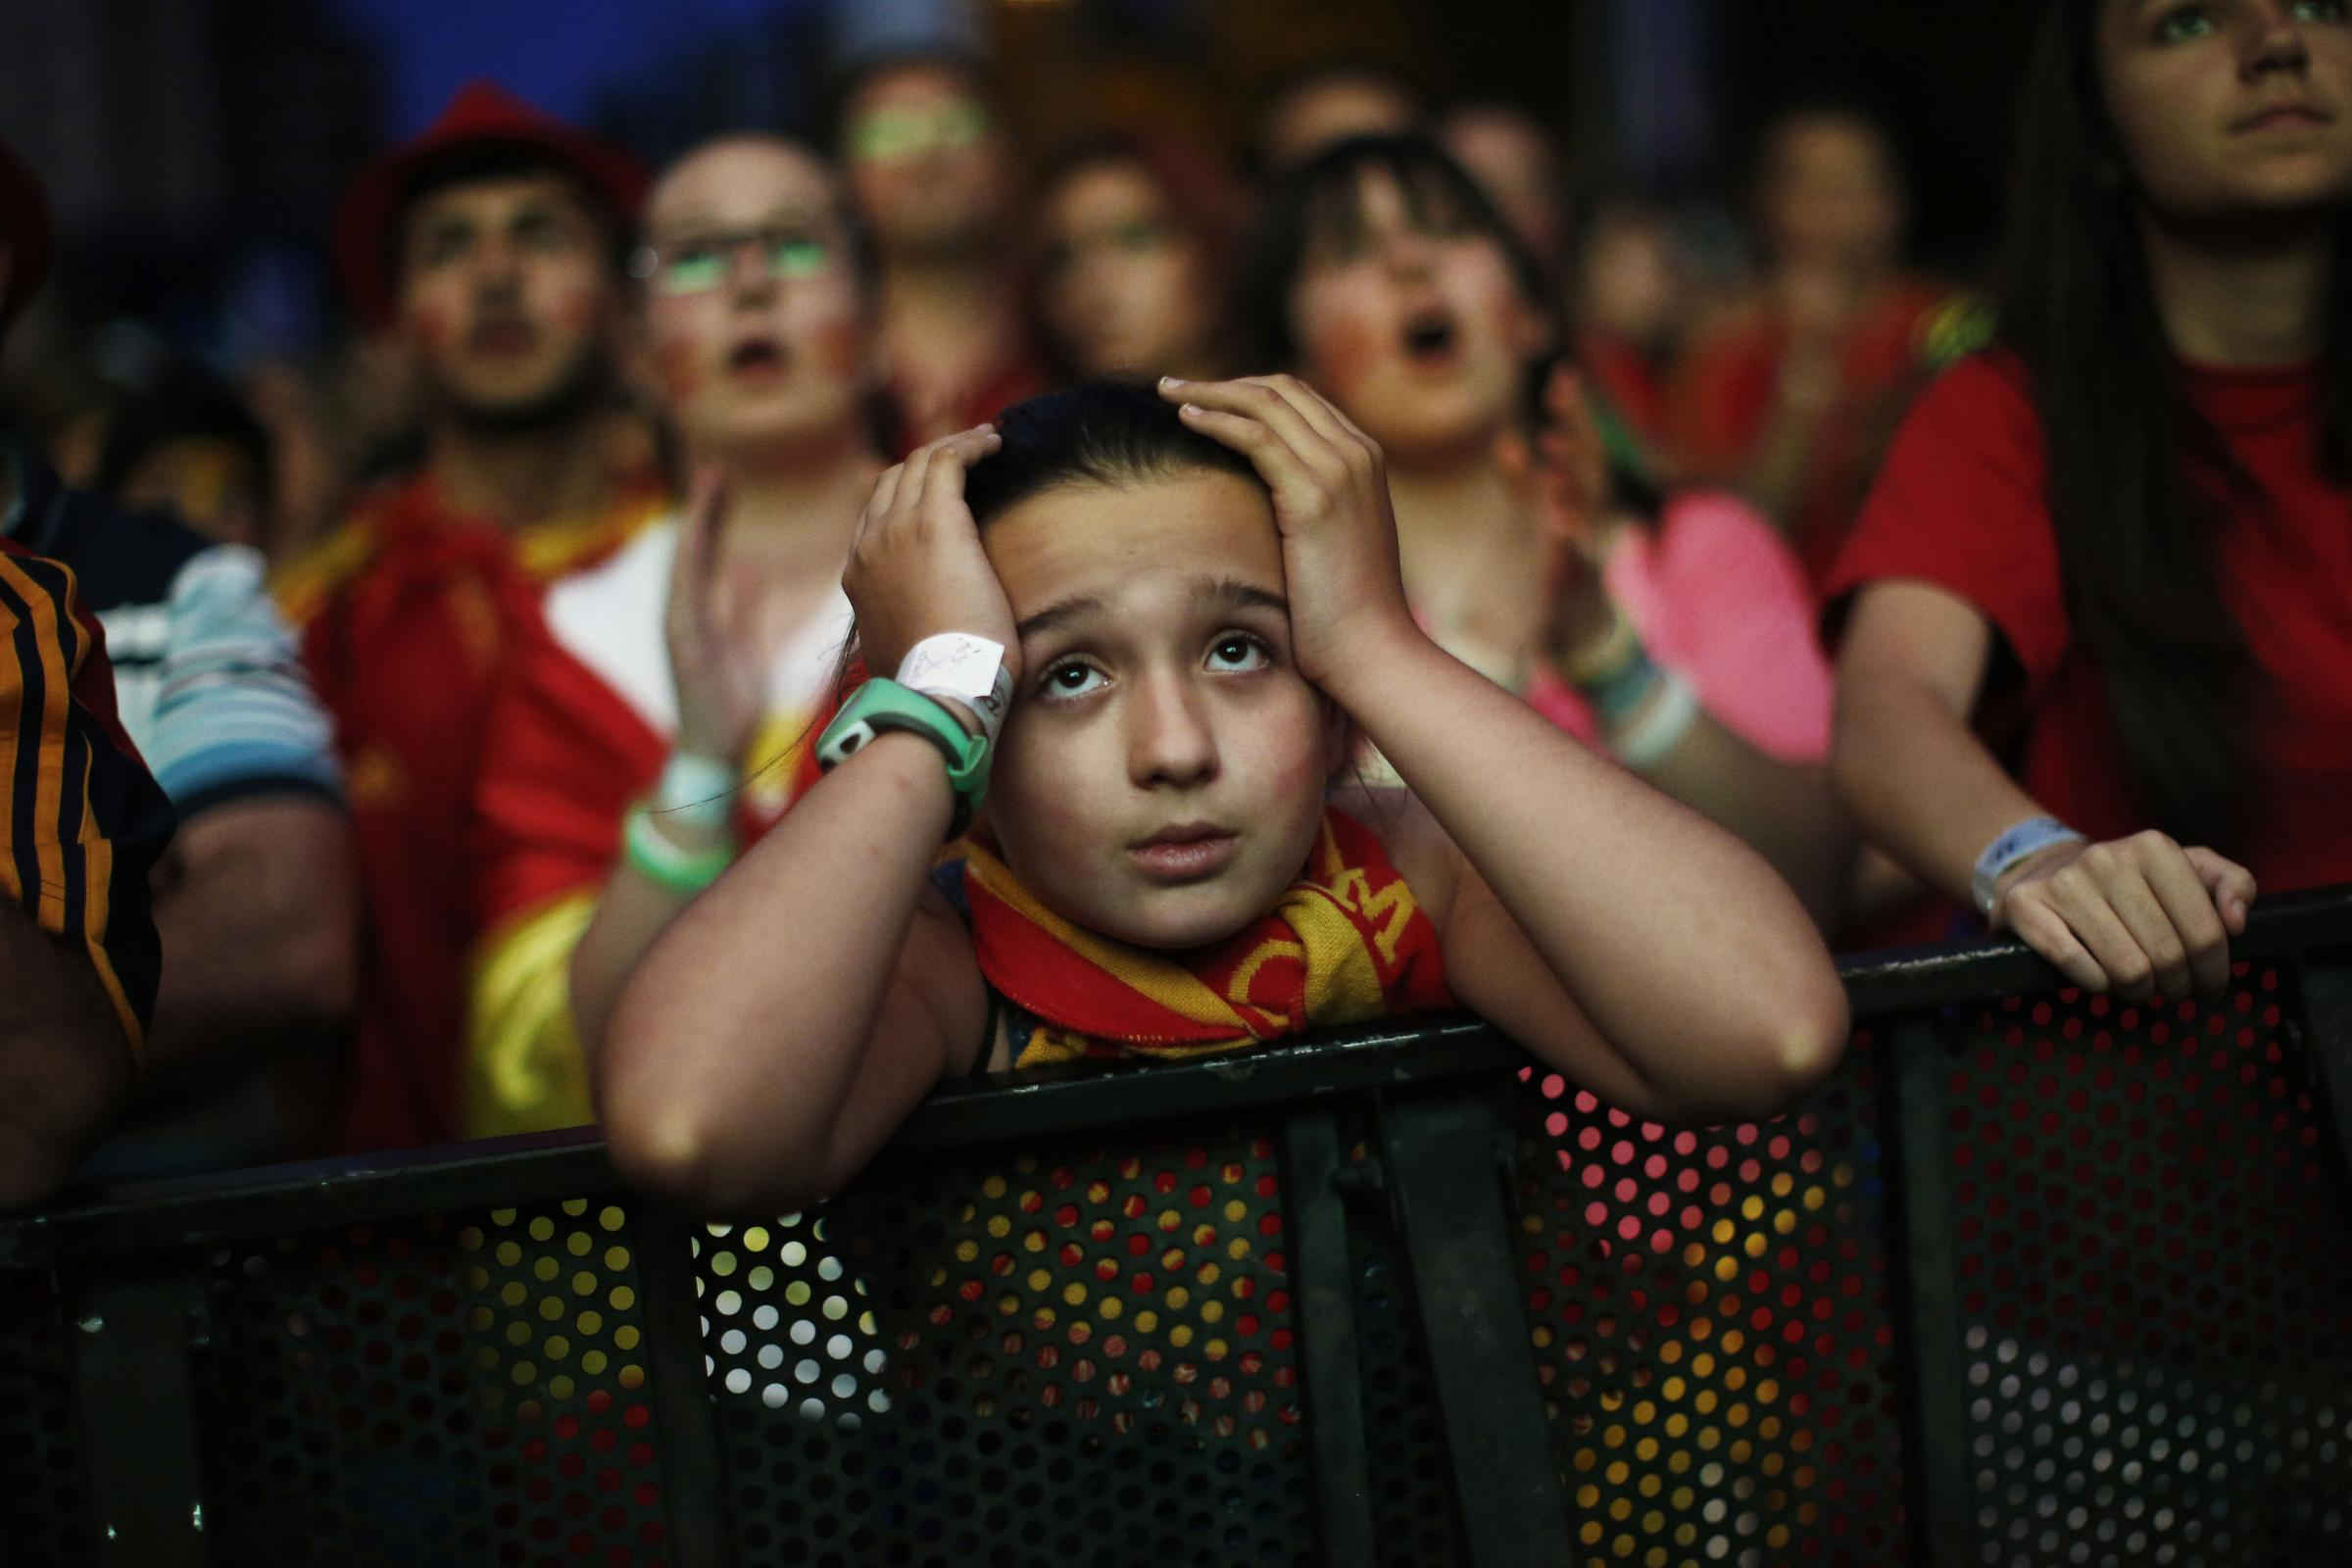 PAIN FOR SPAIN: A Spain supporter holds her head in her hands after Wednesday's defeat to Chile dumped the reigning champions out of the World Cup after just two games